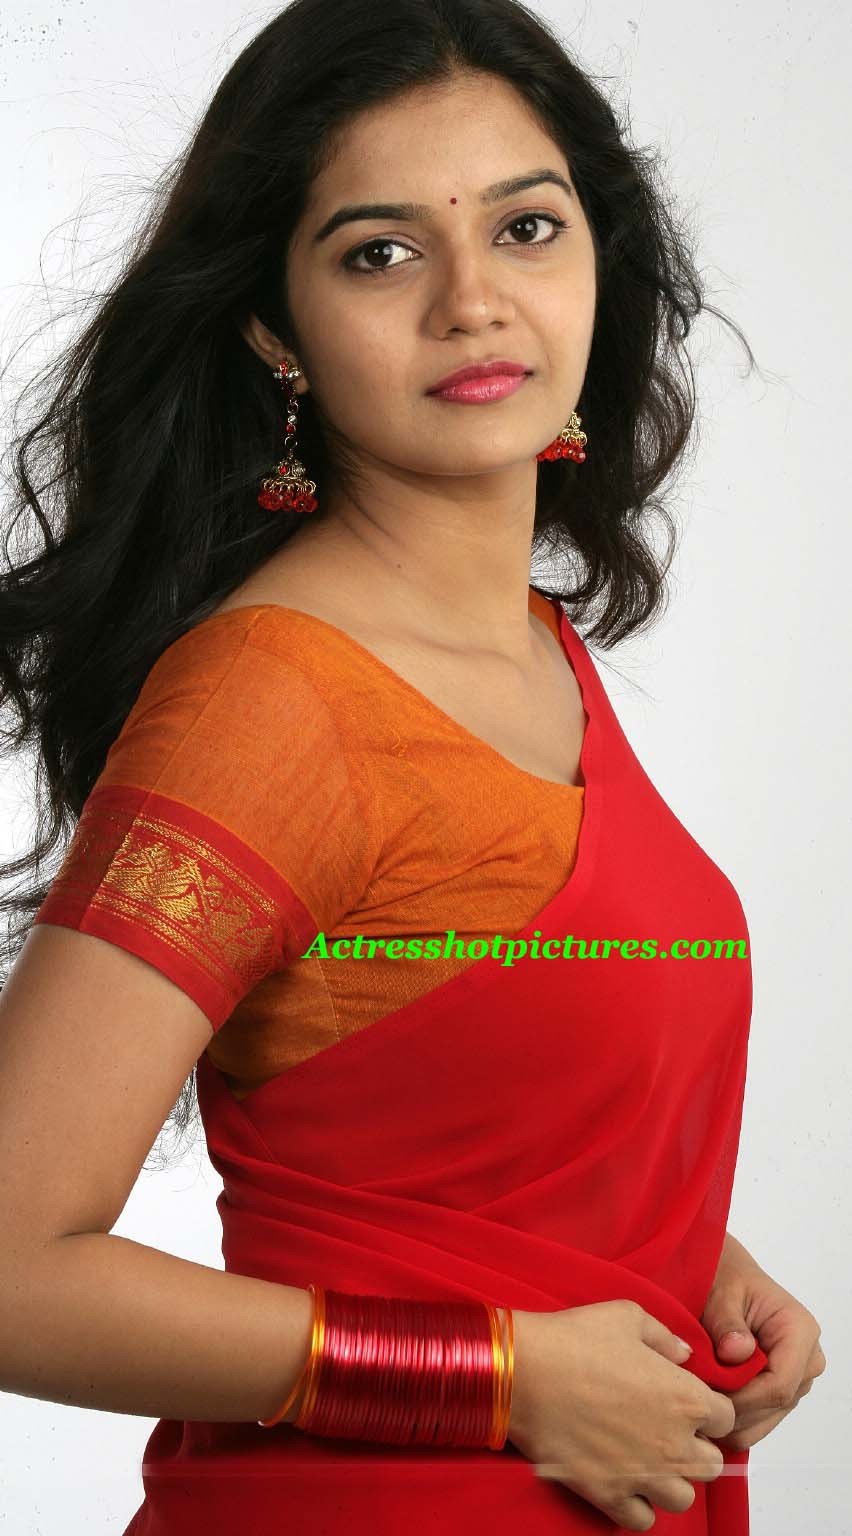 colors swathi in red saree wallpapers - Colors Swathi in Red Saree Wallpapers HD Wallpapers